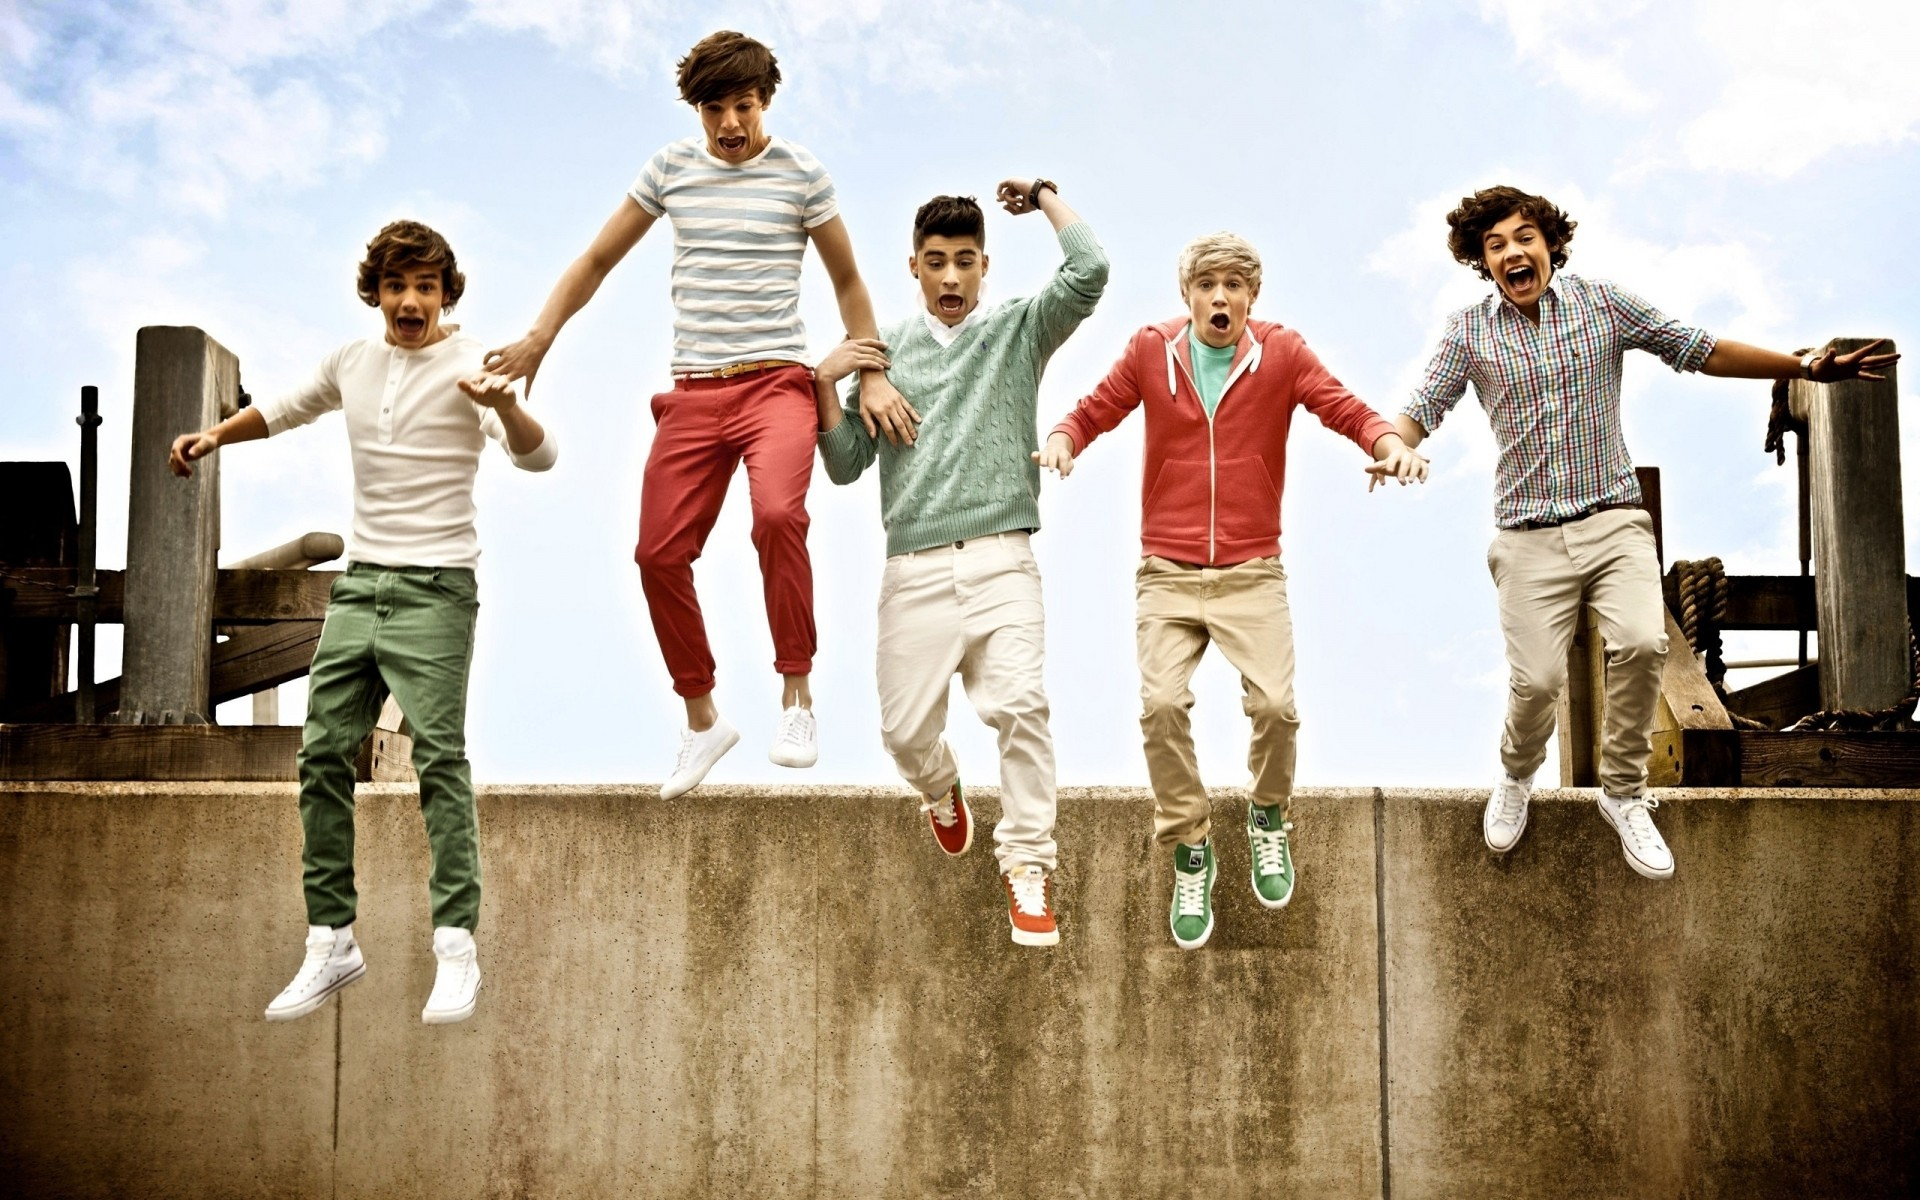 Bands Child Fun Boy Joy Happiness Man Friendship Outdoors - Up All Night One Direction Photoshoot - HD Wallpaper